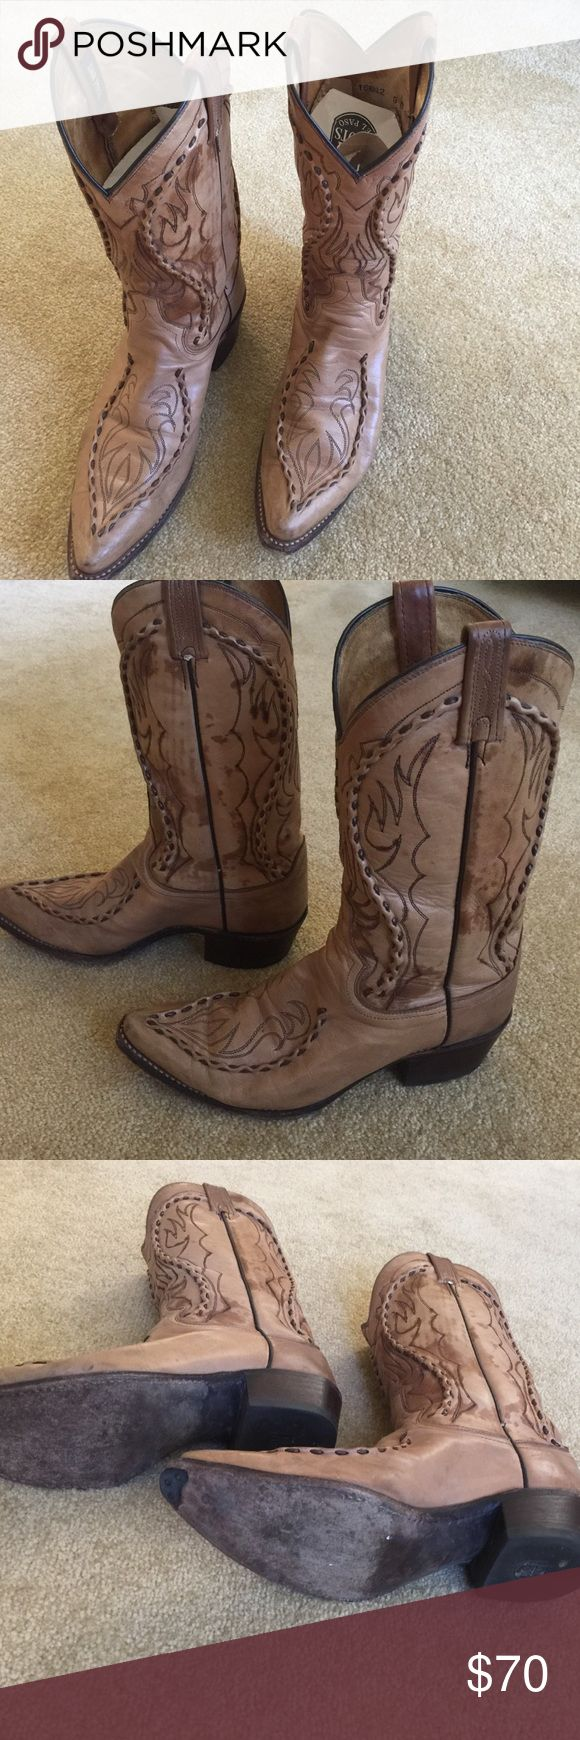 Dan Post men's western boots Genuine leather, vintage, Dan Post men's Western-style cowboy boots. Includes original box and boot shapers inside to help them hold their shape. Paid $207 many many years ago. For that special cowboy in your life! Dan Post Shoes